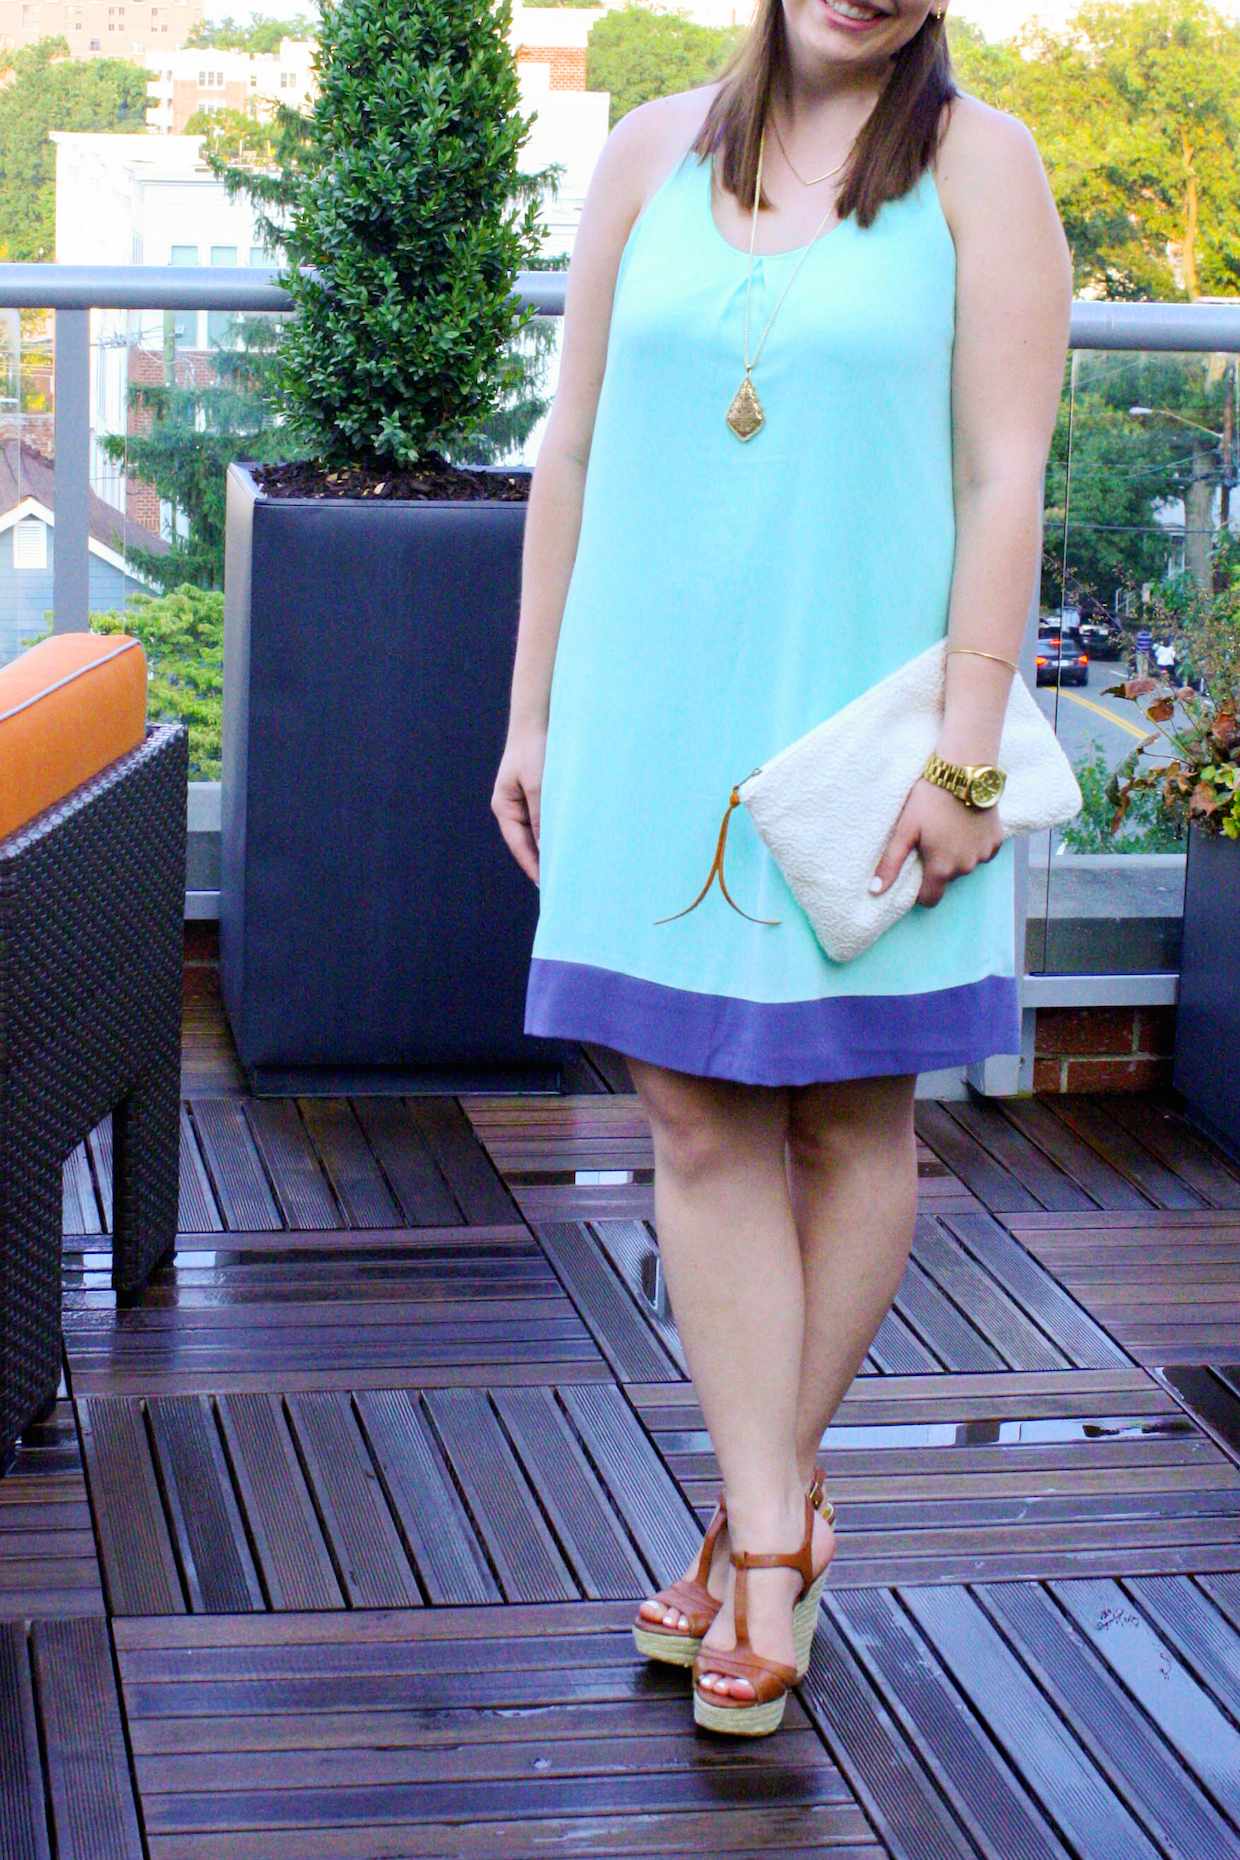 a touch of teal shop dress up new girl mint dress